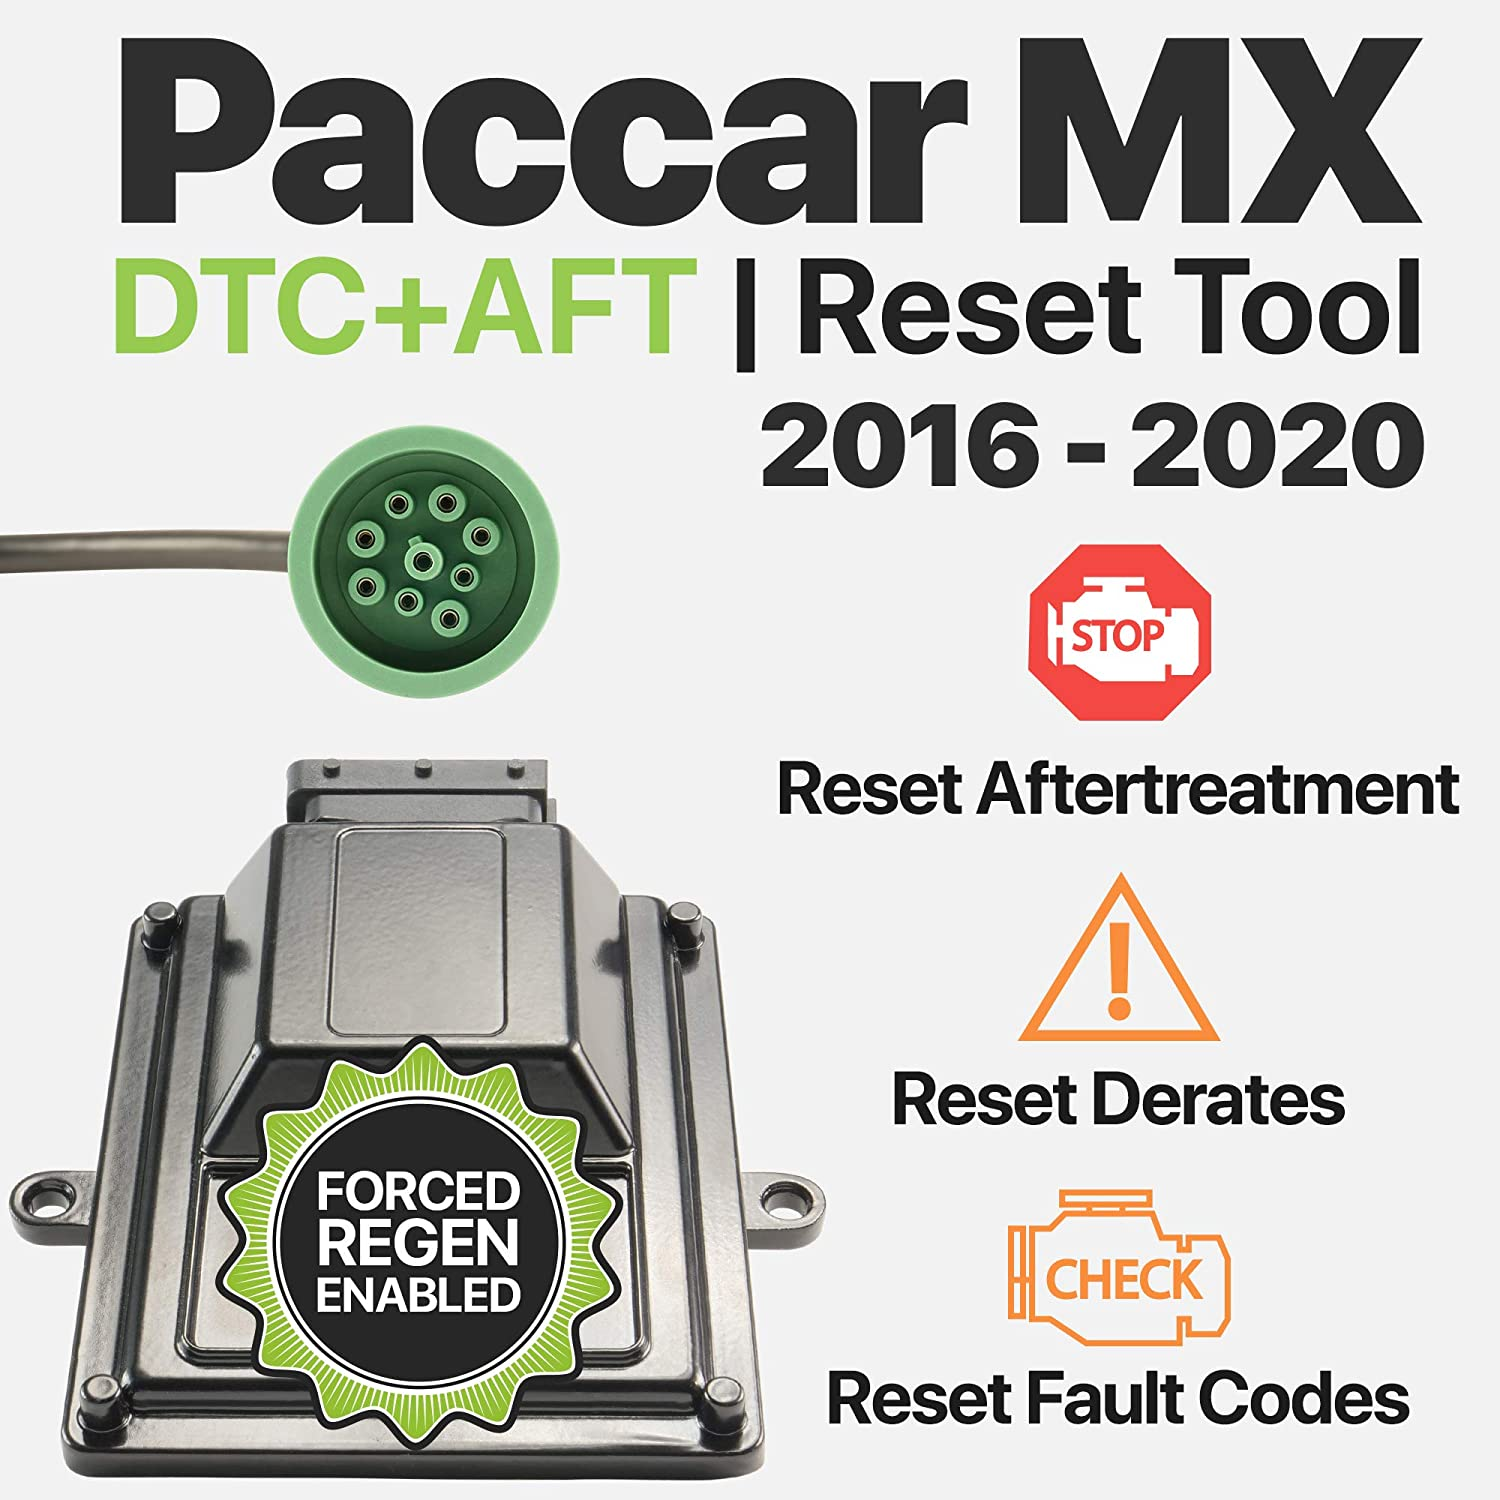 OTR Performance Paccar MX | Heavy Duty Diagnostic | Forced DPF Regen |  Reset Derates | Clear Inactive/Active Faults (2016-2020)